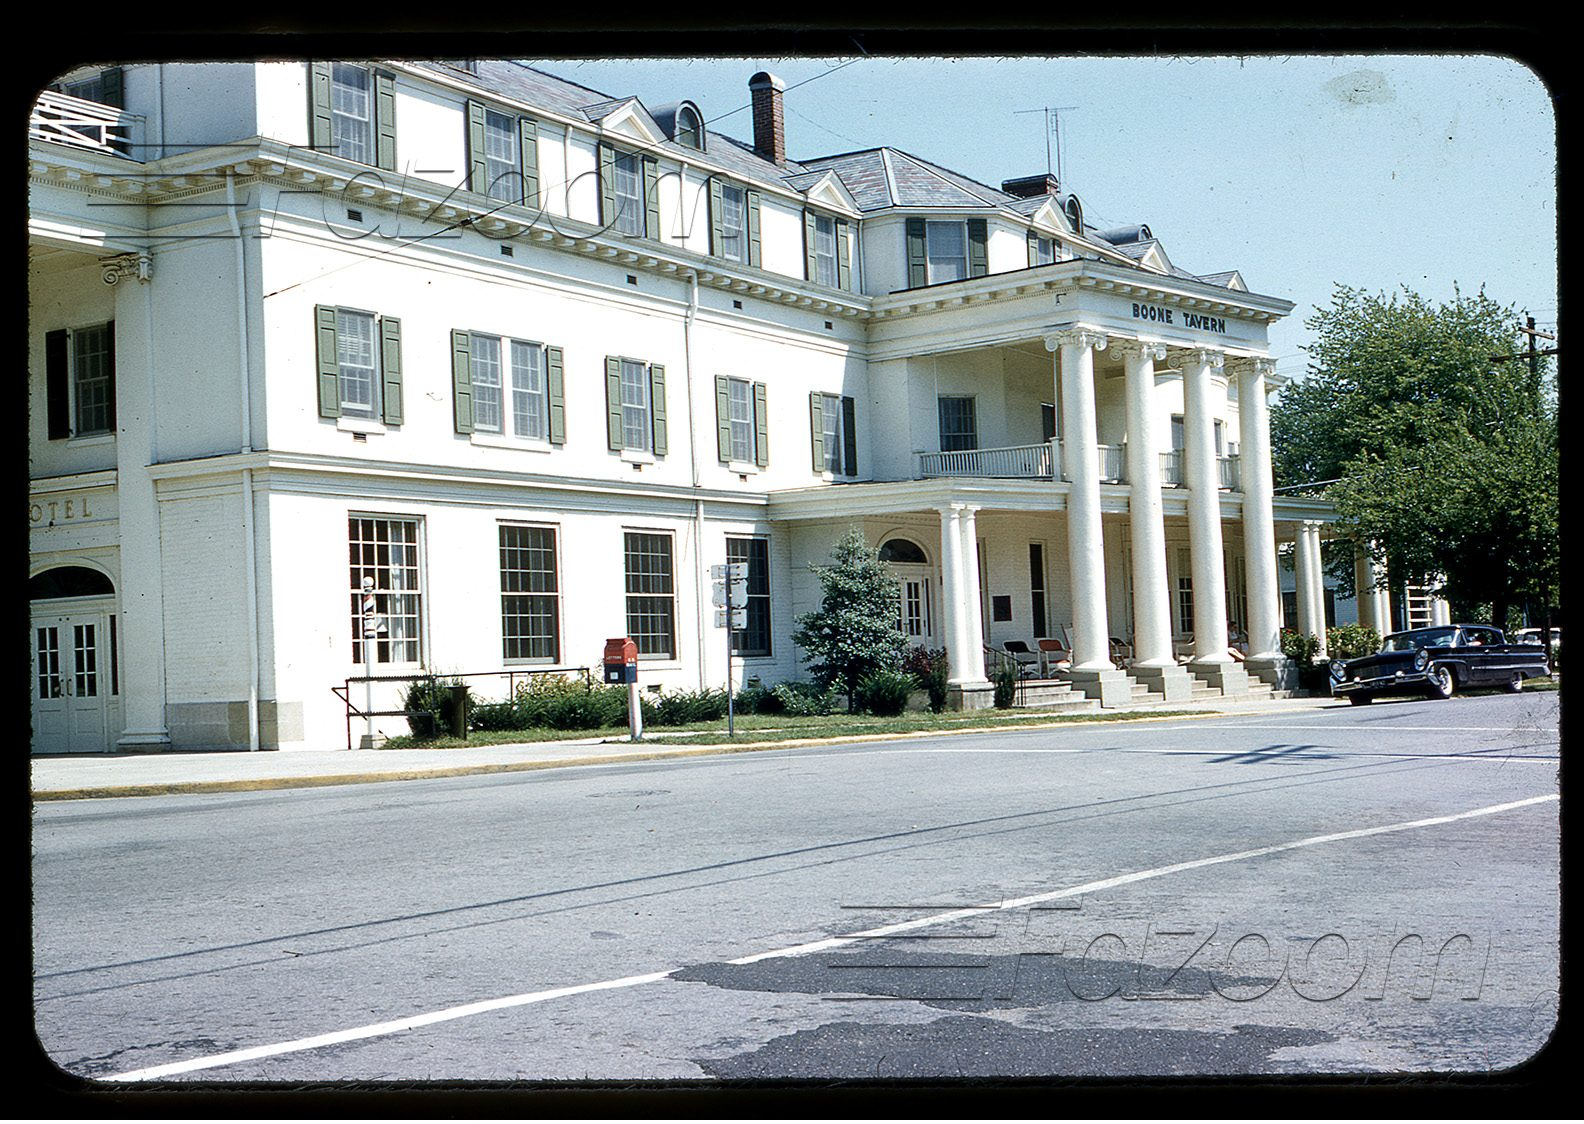 Historic Boone Tavern Hotel and Restaurant in Berea, Kentucky circa 1958